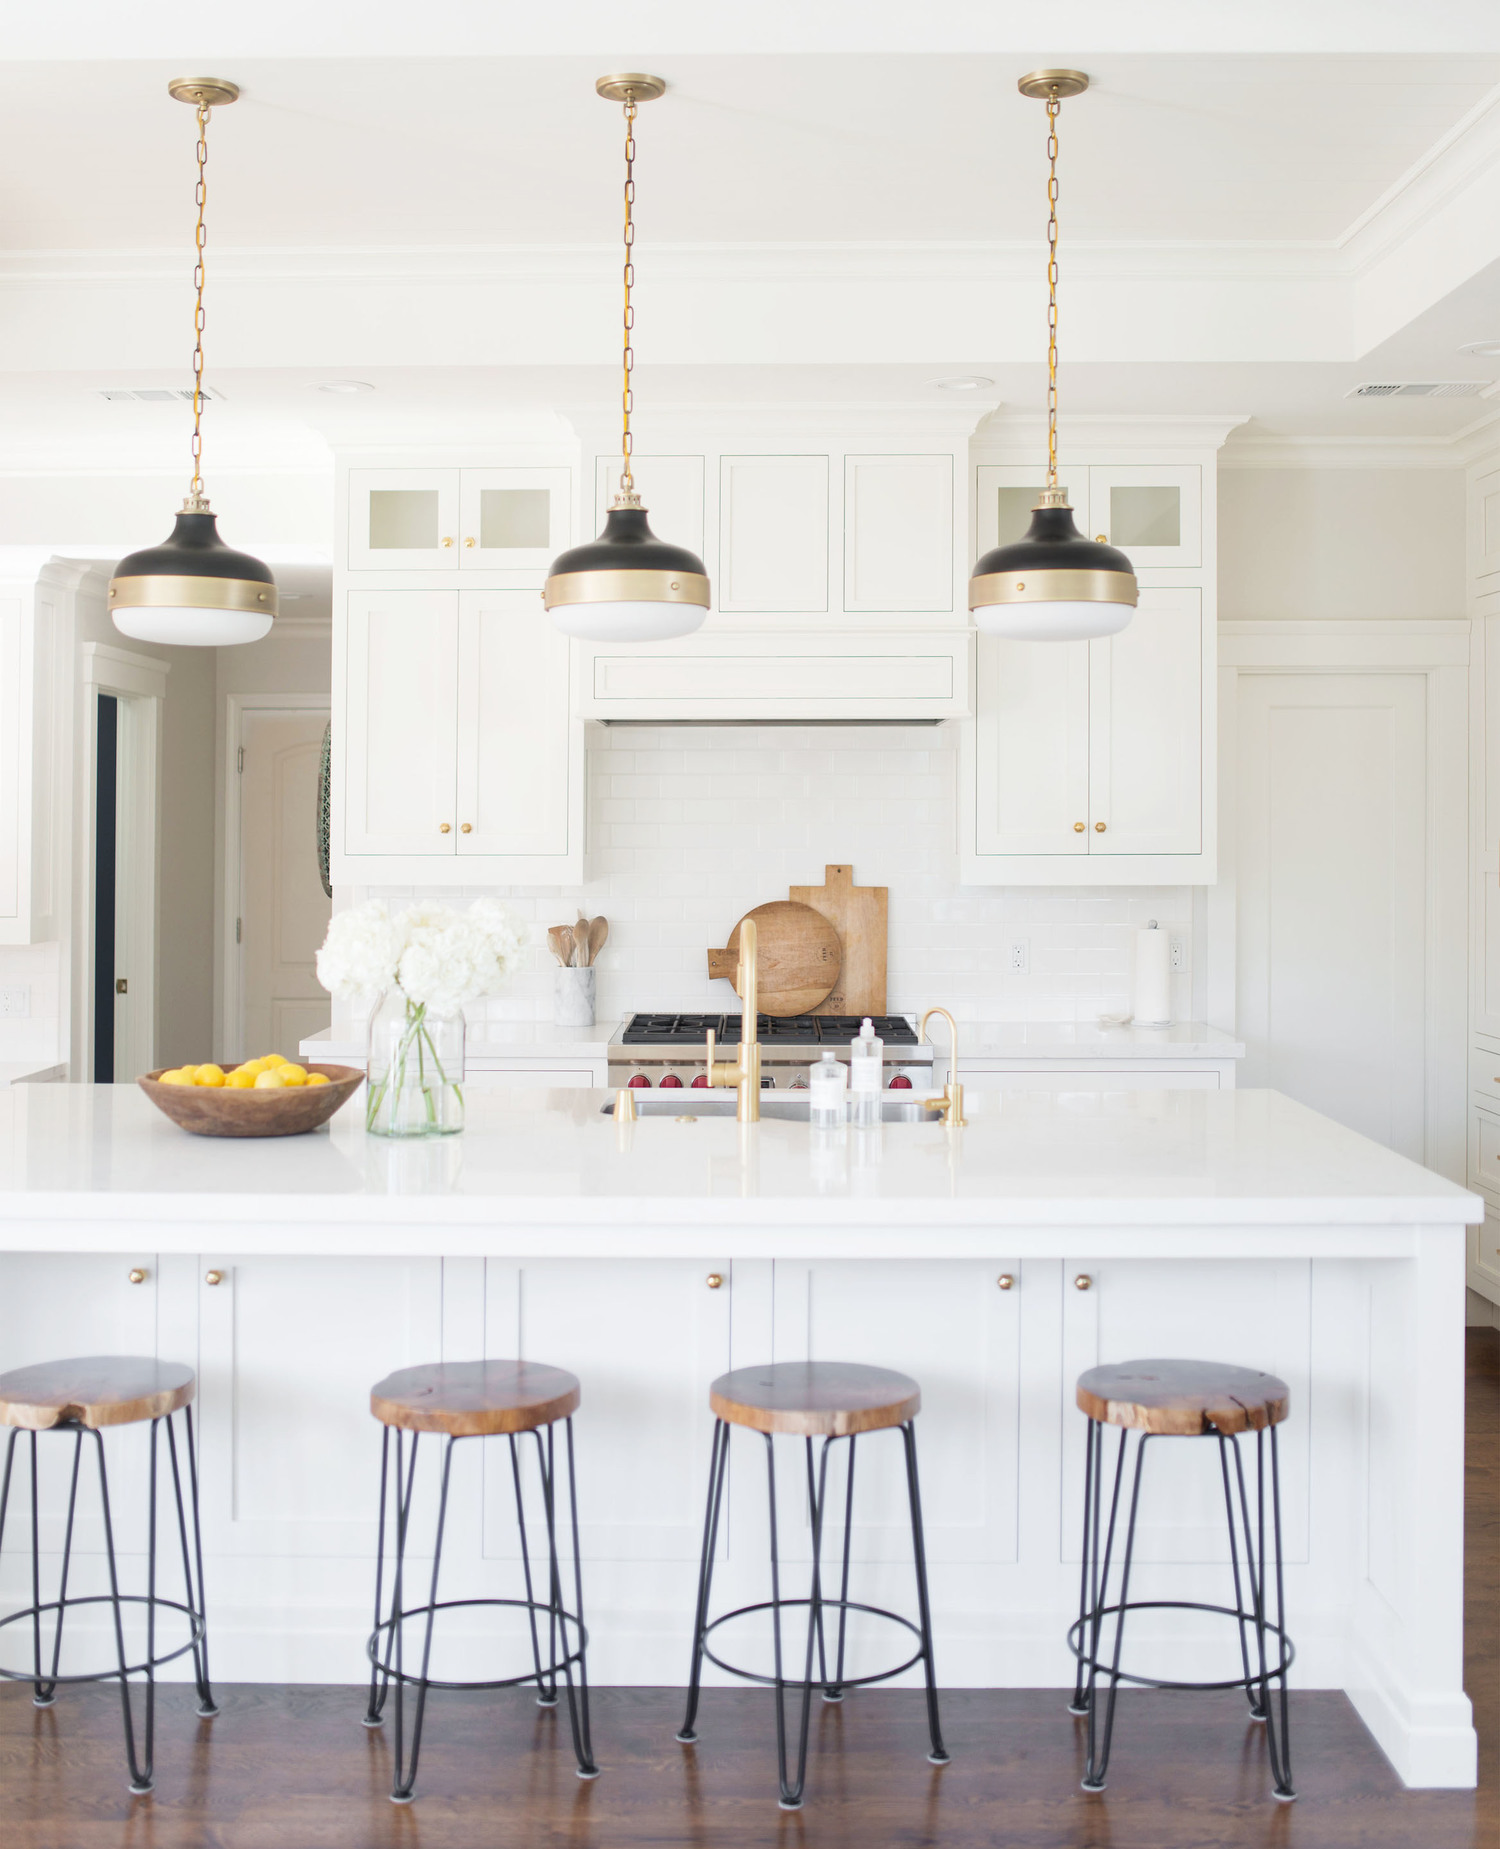 White,+Wood,+Gold+Kitchen+b2y+Studio+McGee.jpg